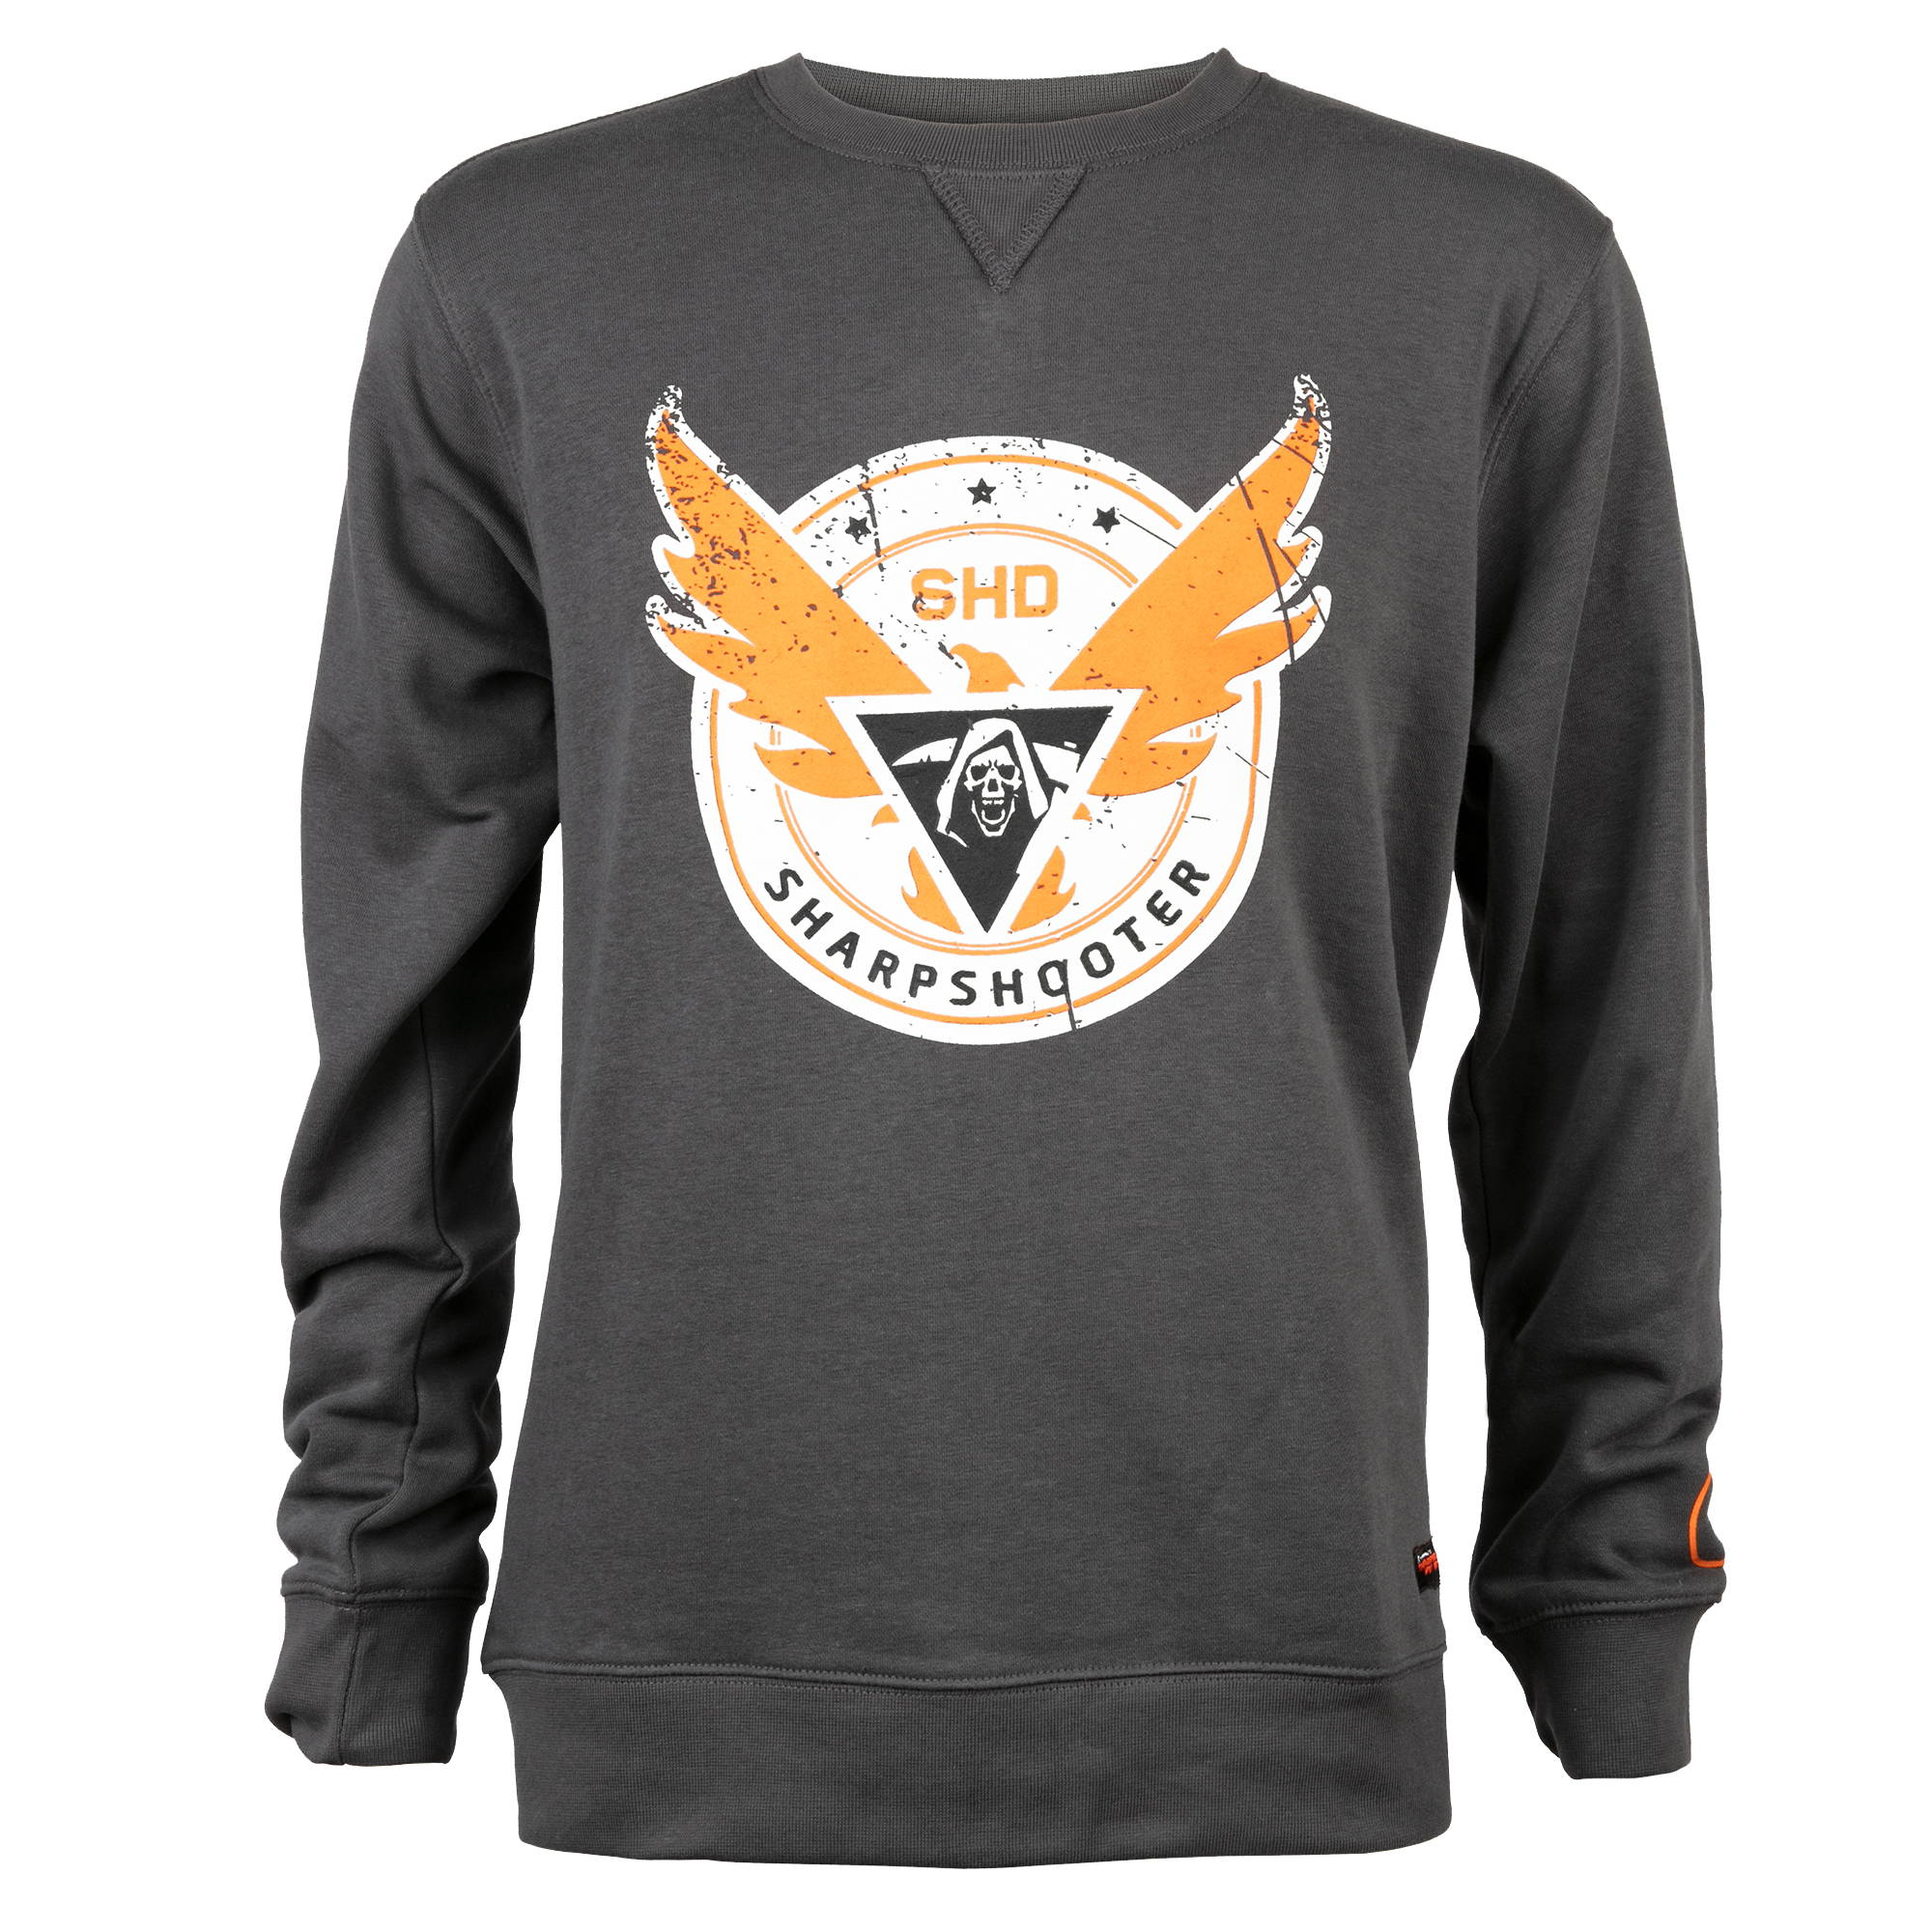 Product image of the The Division 2 Sharpshooter Crew Neck Sweatshirt